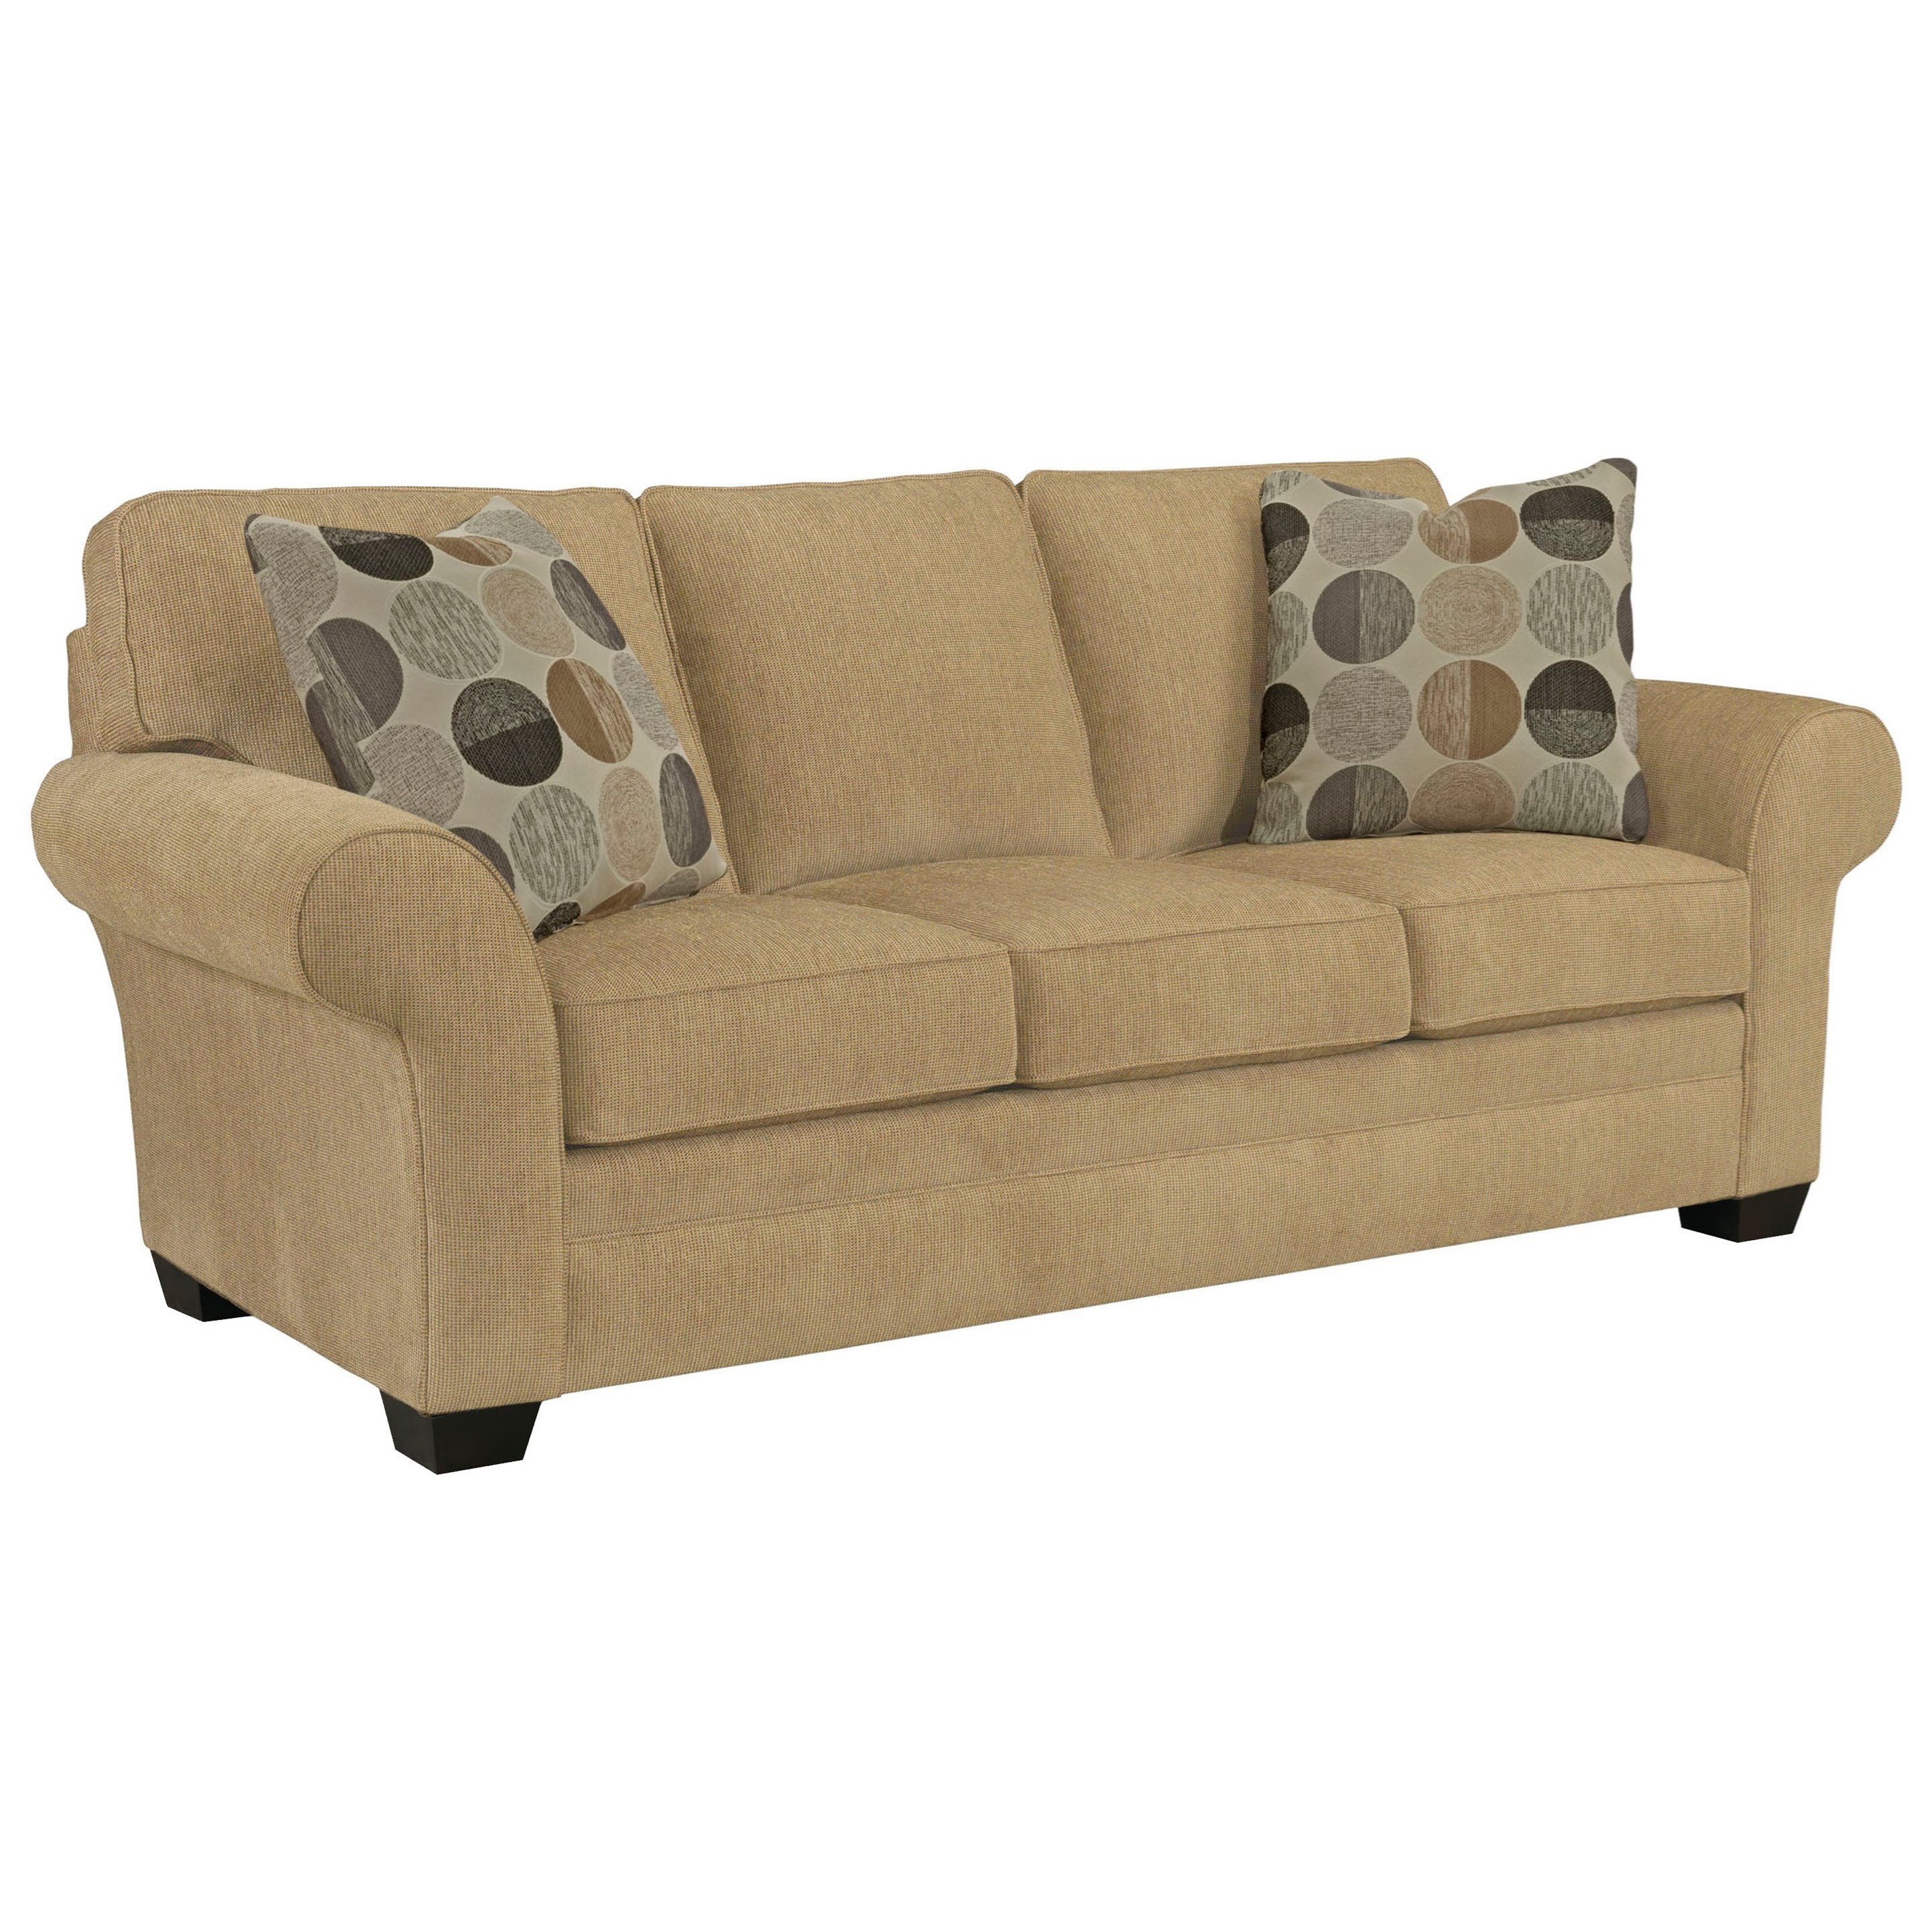 Broyhill Furniture Zachary Queen Size Sleeper - Item Number: 7902-7-8595-83